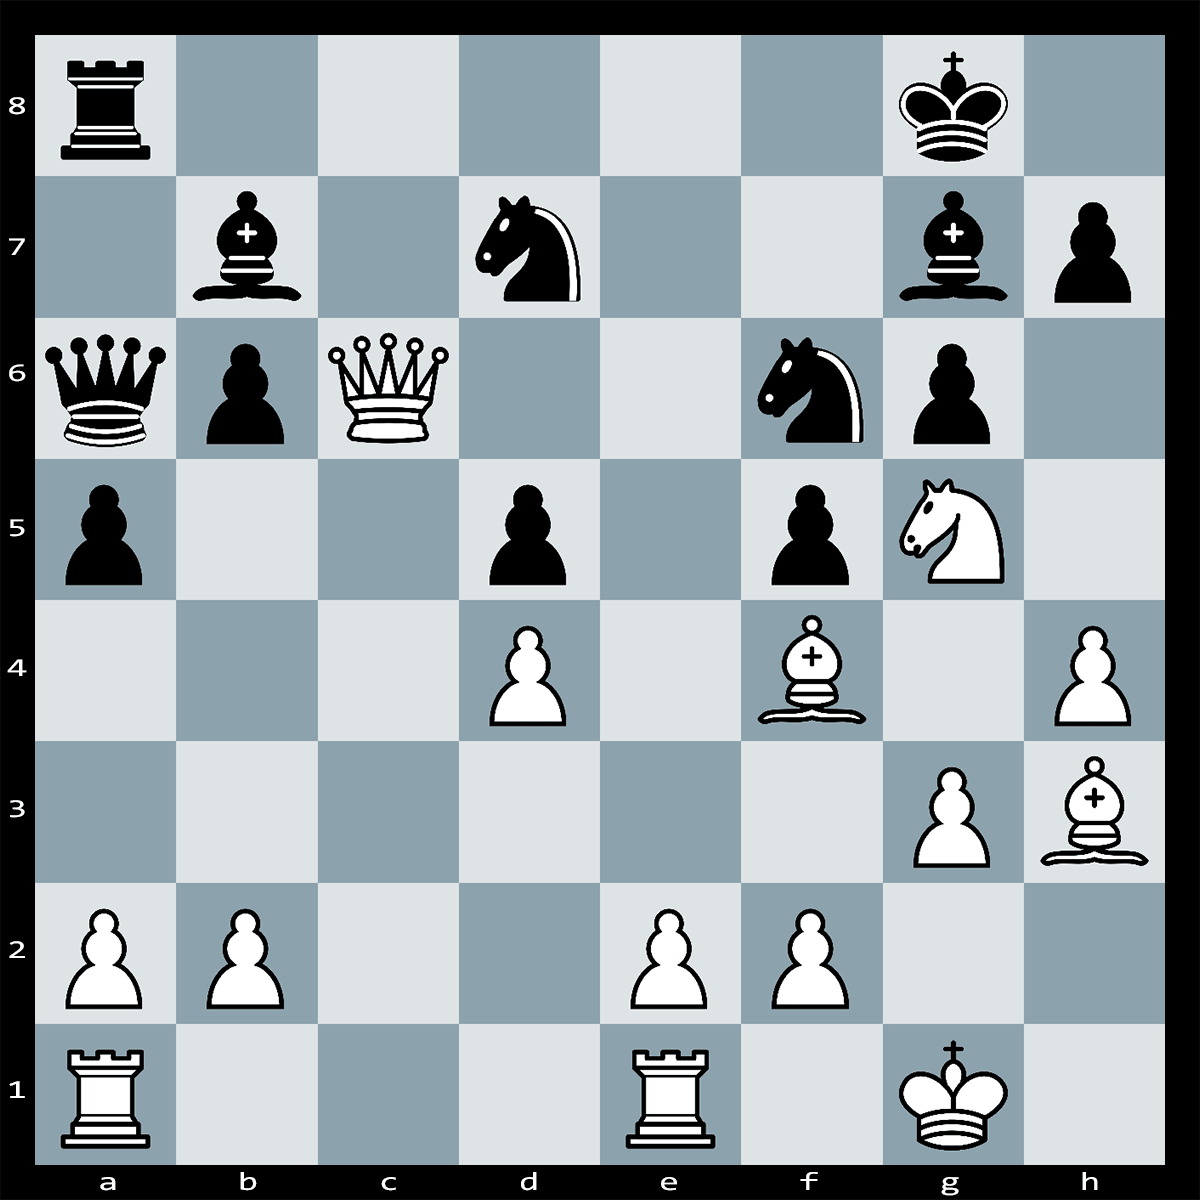 White can force checkmate in five moves. Can you see how this is achieved?